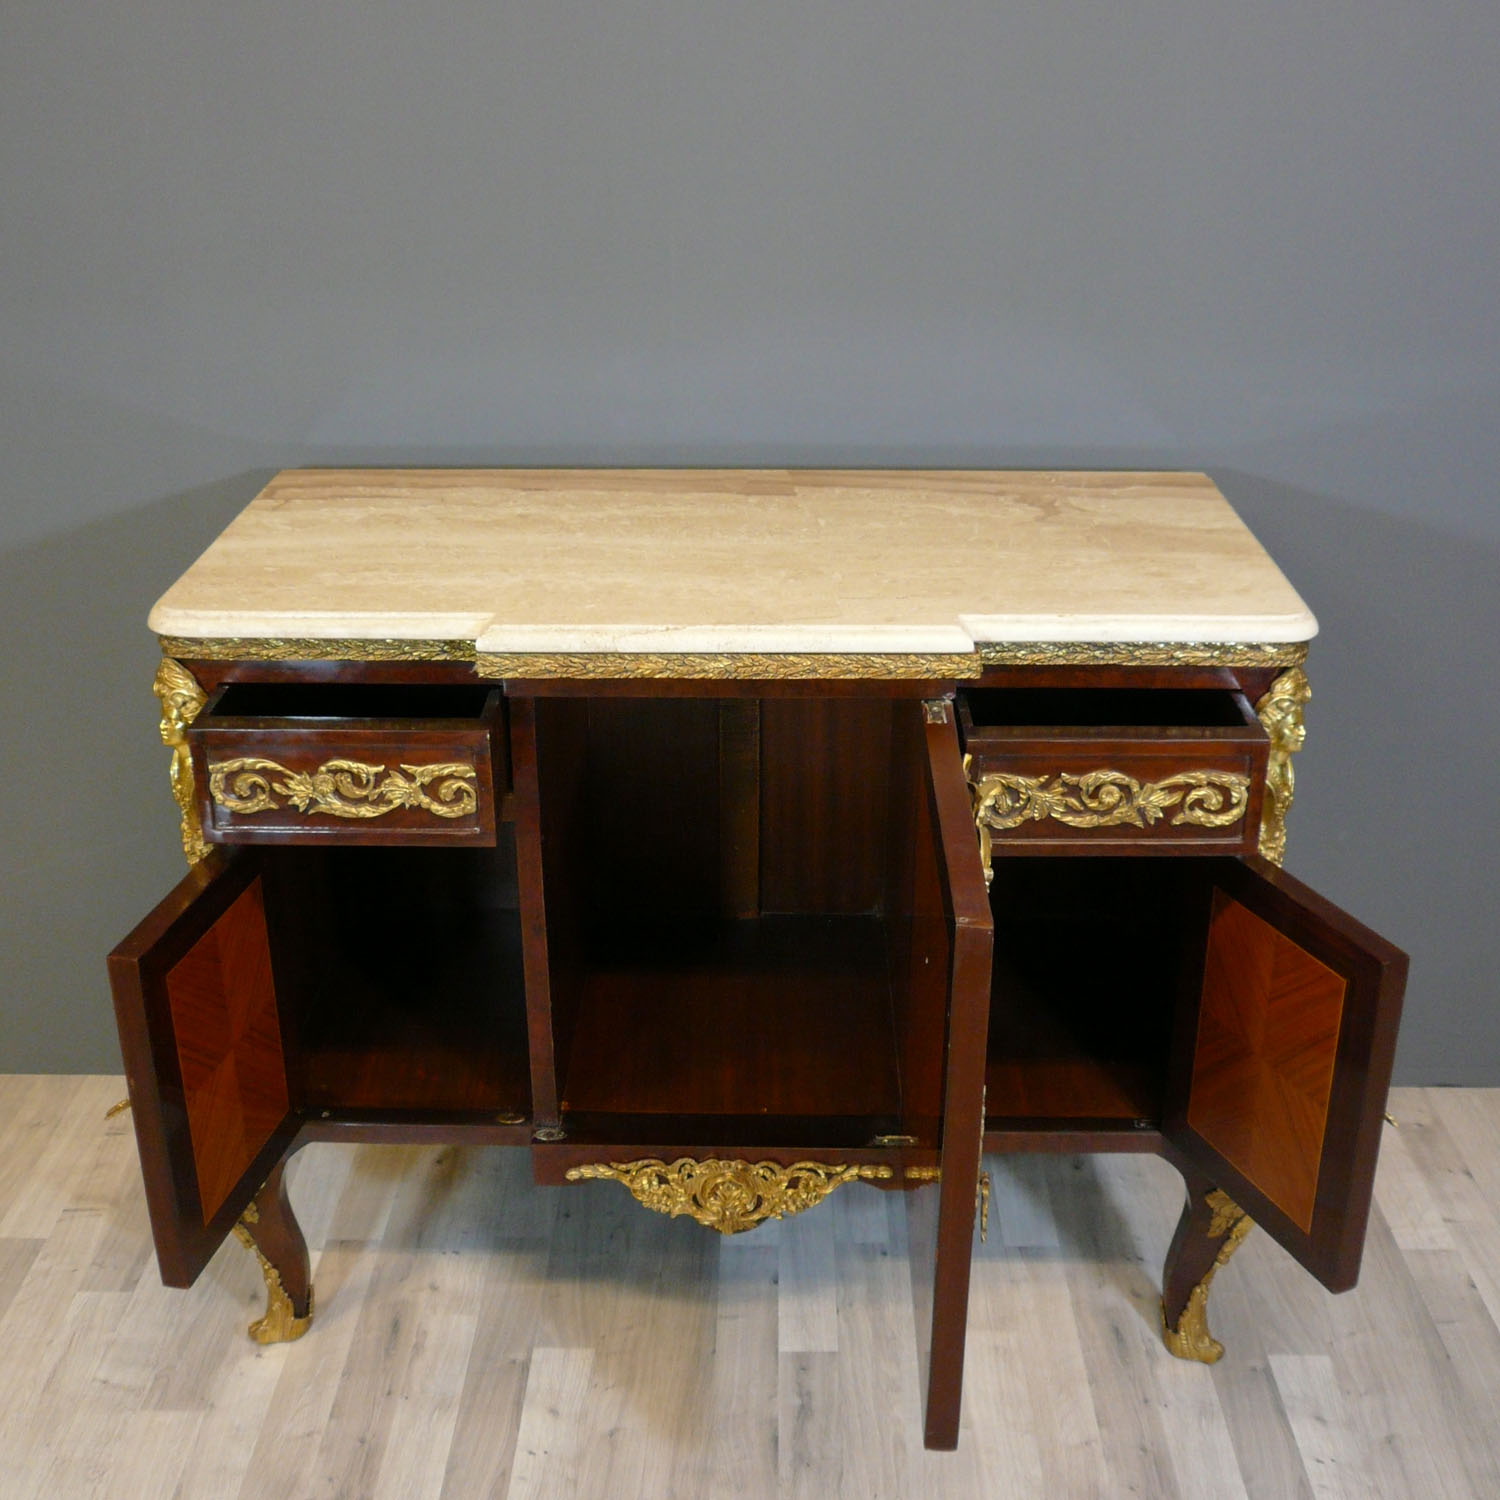 Buffet louis xv commode louis xv bureau louis xv - Meuble style louis 15 ...